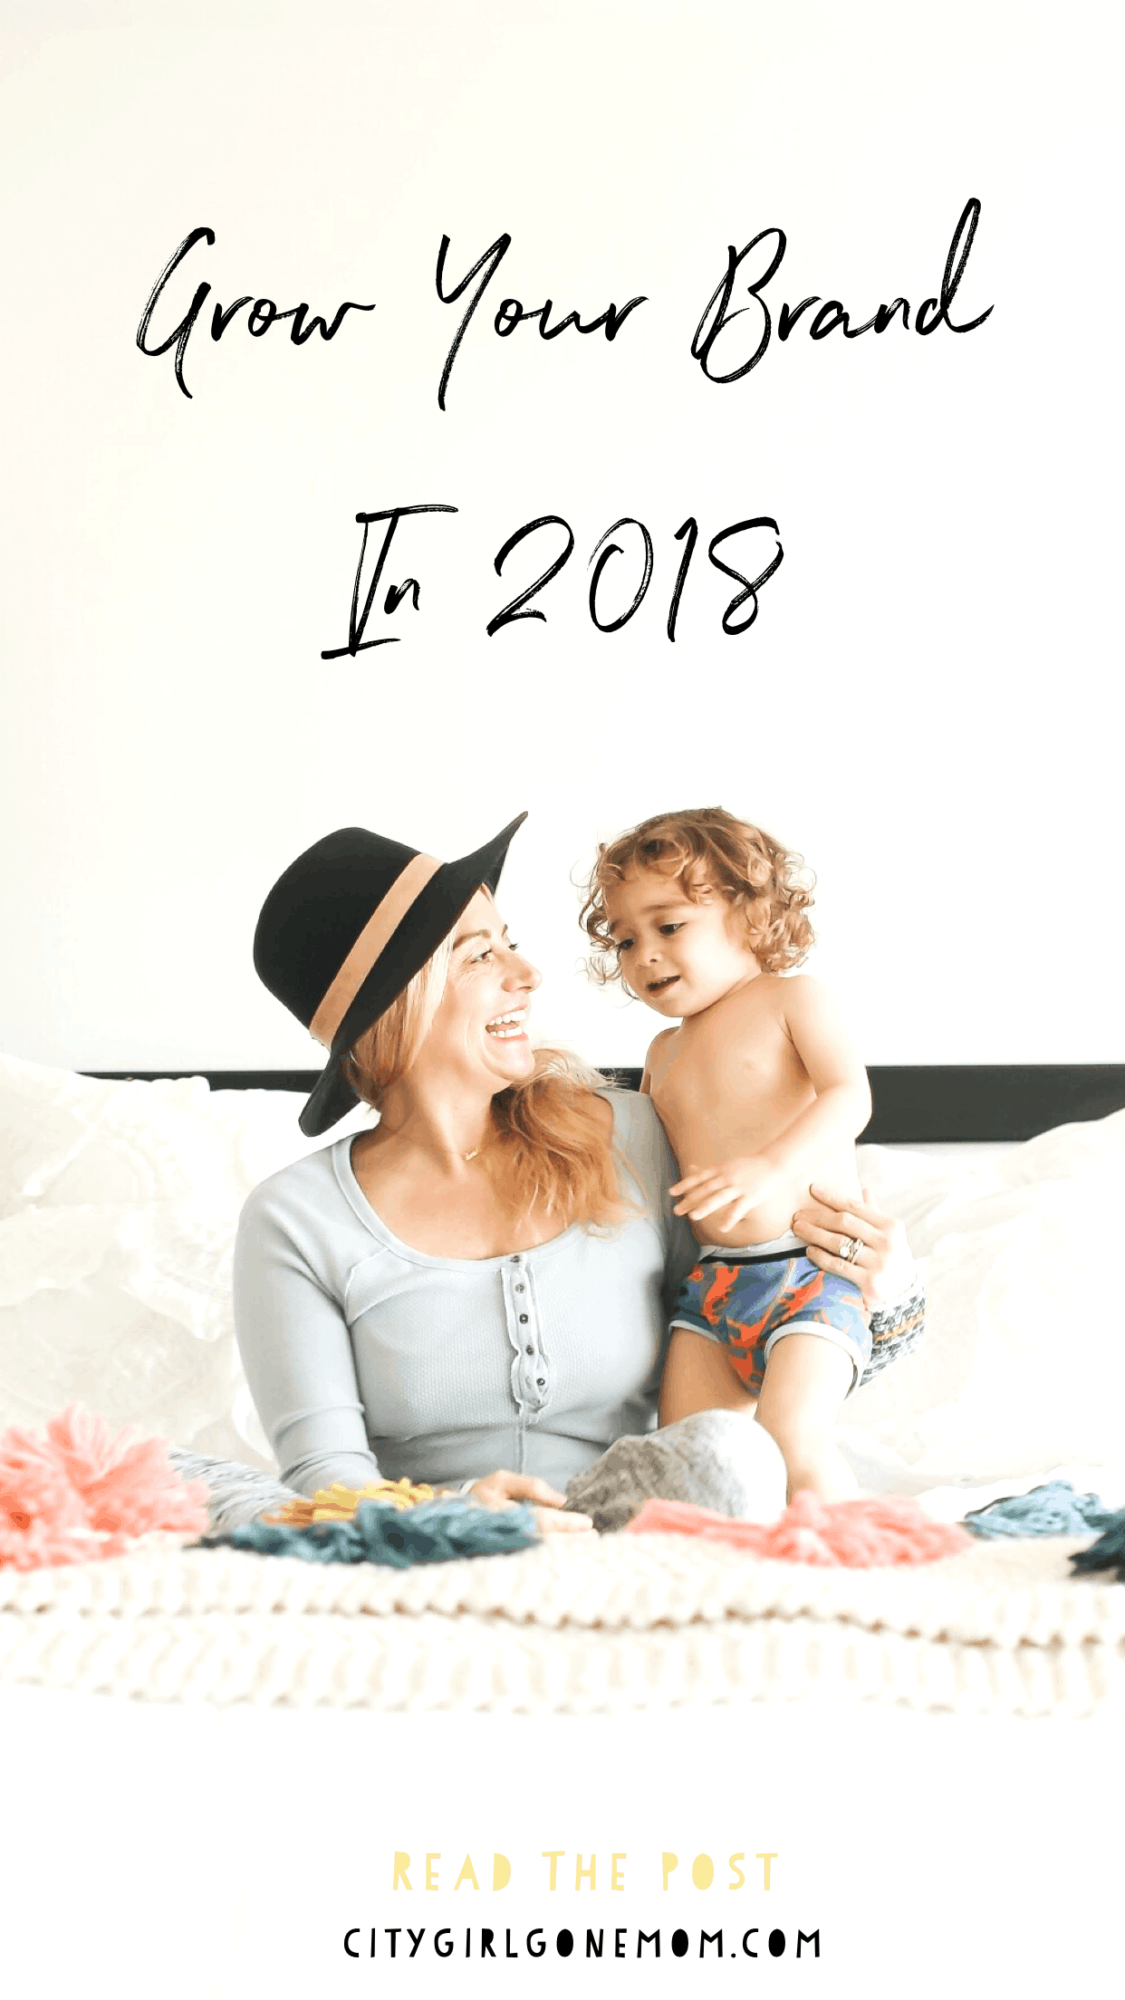 5 Things You Can Do For Your Blog in 2018 - Grow Your Brand in 2018 #citygirlgonemom #blogging #blog #growyourbrand2018